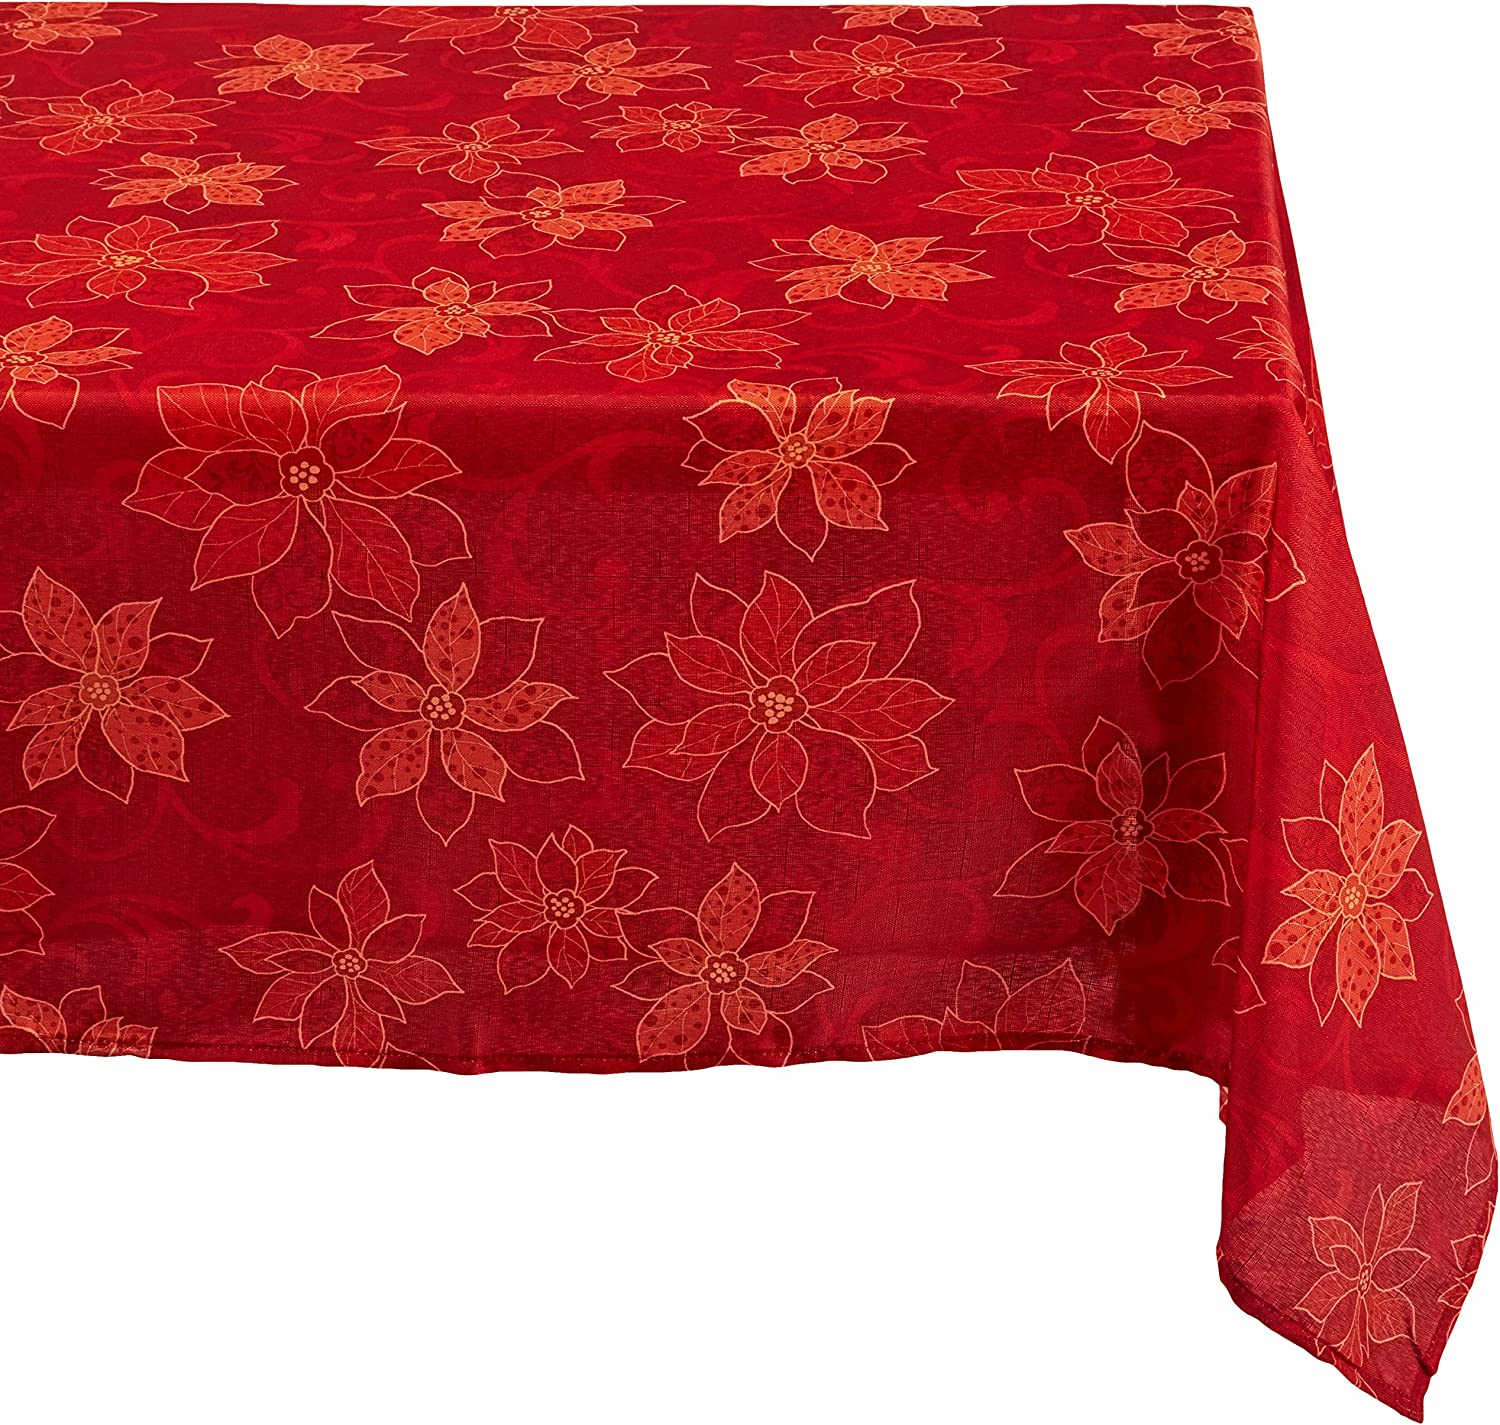 Benson Mills PoinsettiaScroll Printed Fabric Tablecloth, 60-Inch-By-84 Inch